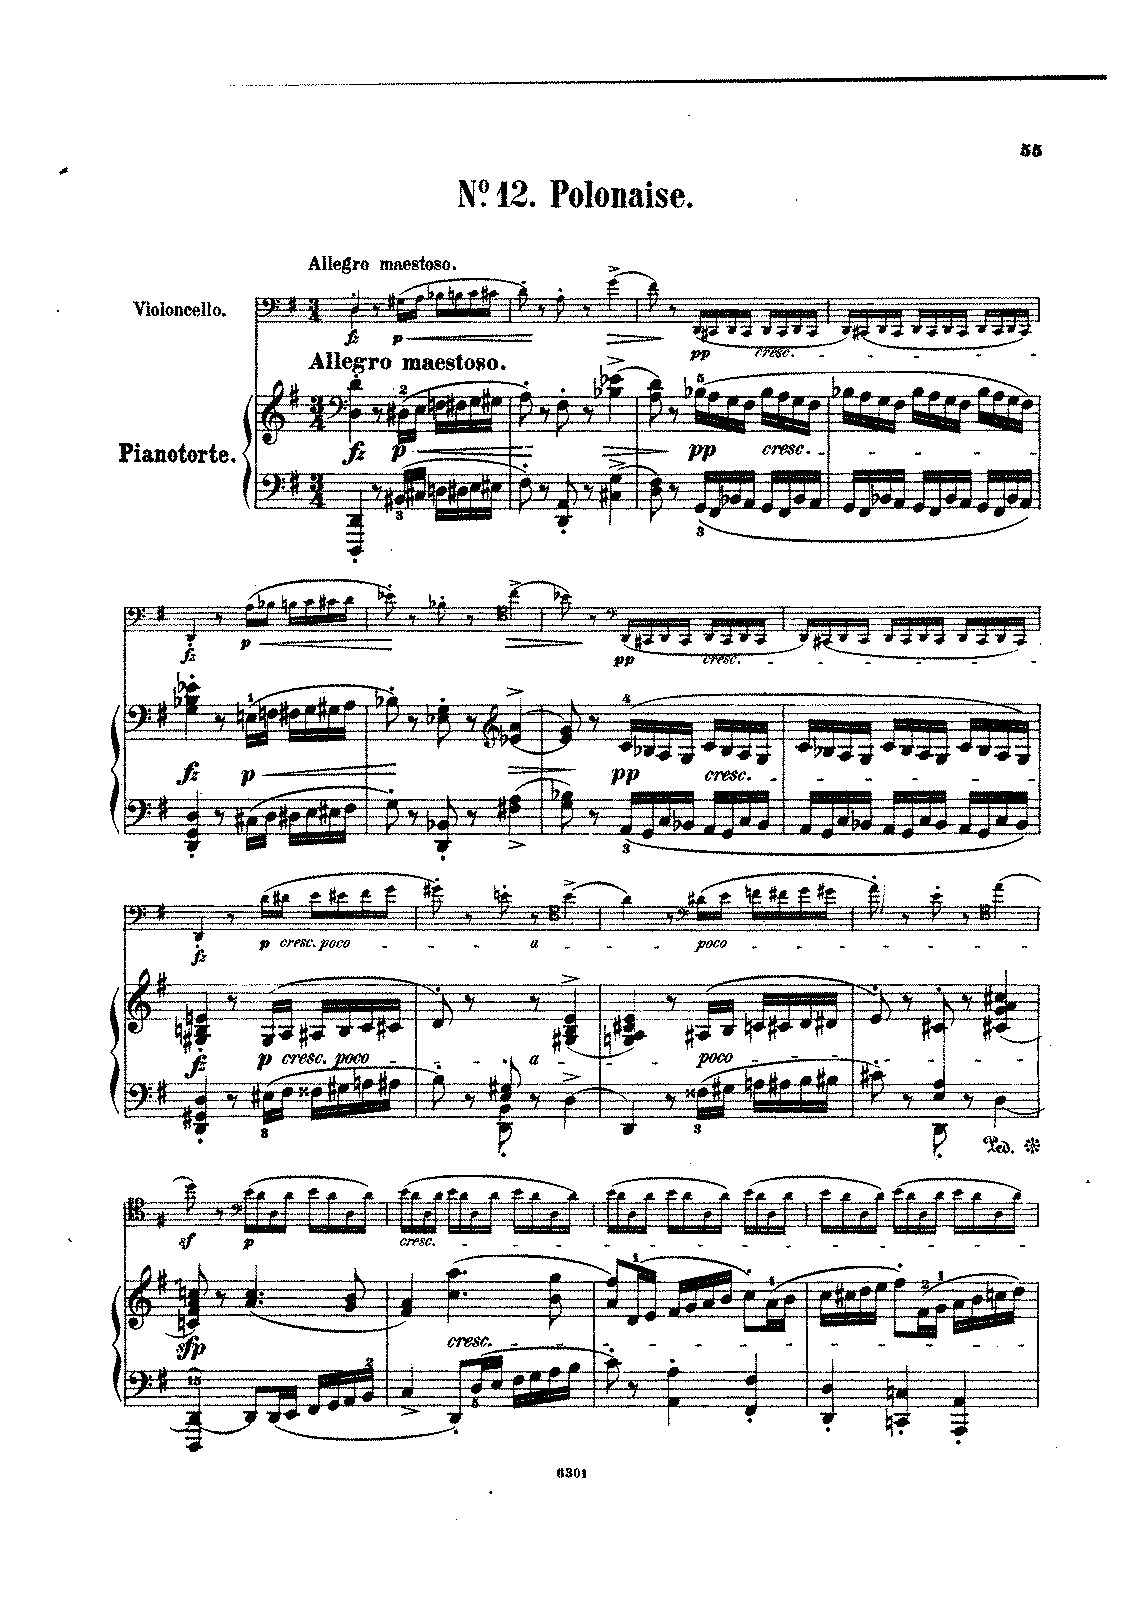 PMLP02334-Chopin - 12a Polonaise Op53 for Cello and Piano (Grutzmacher) score.pdf